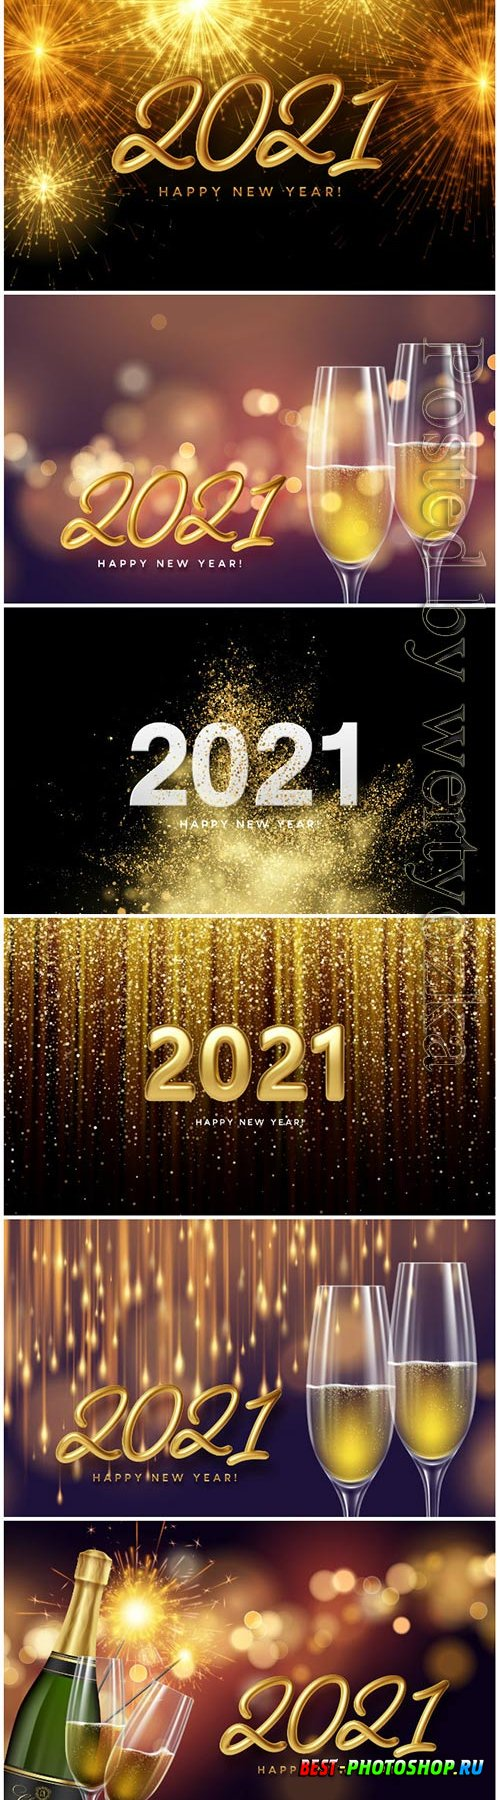 Vector greeting card Merry Christmas 2021 and happy New Year